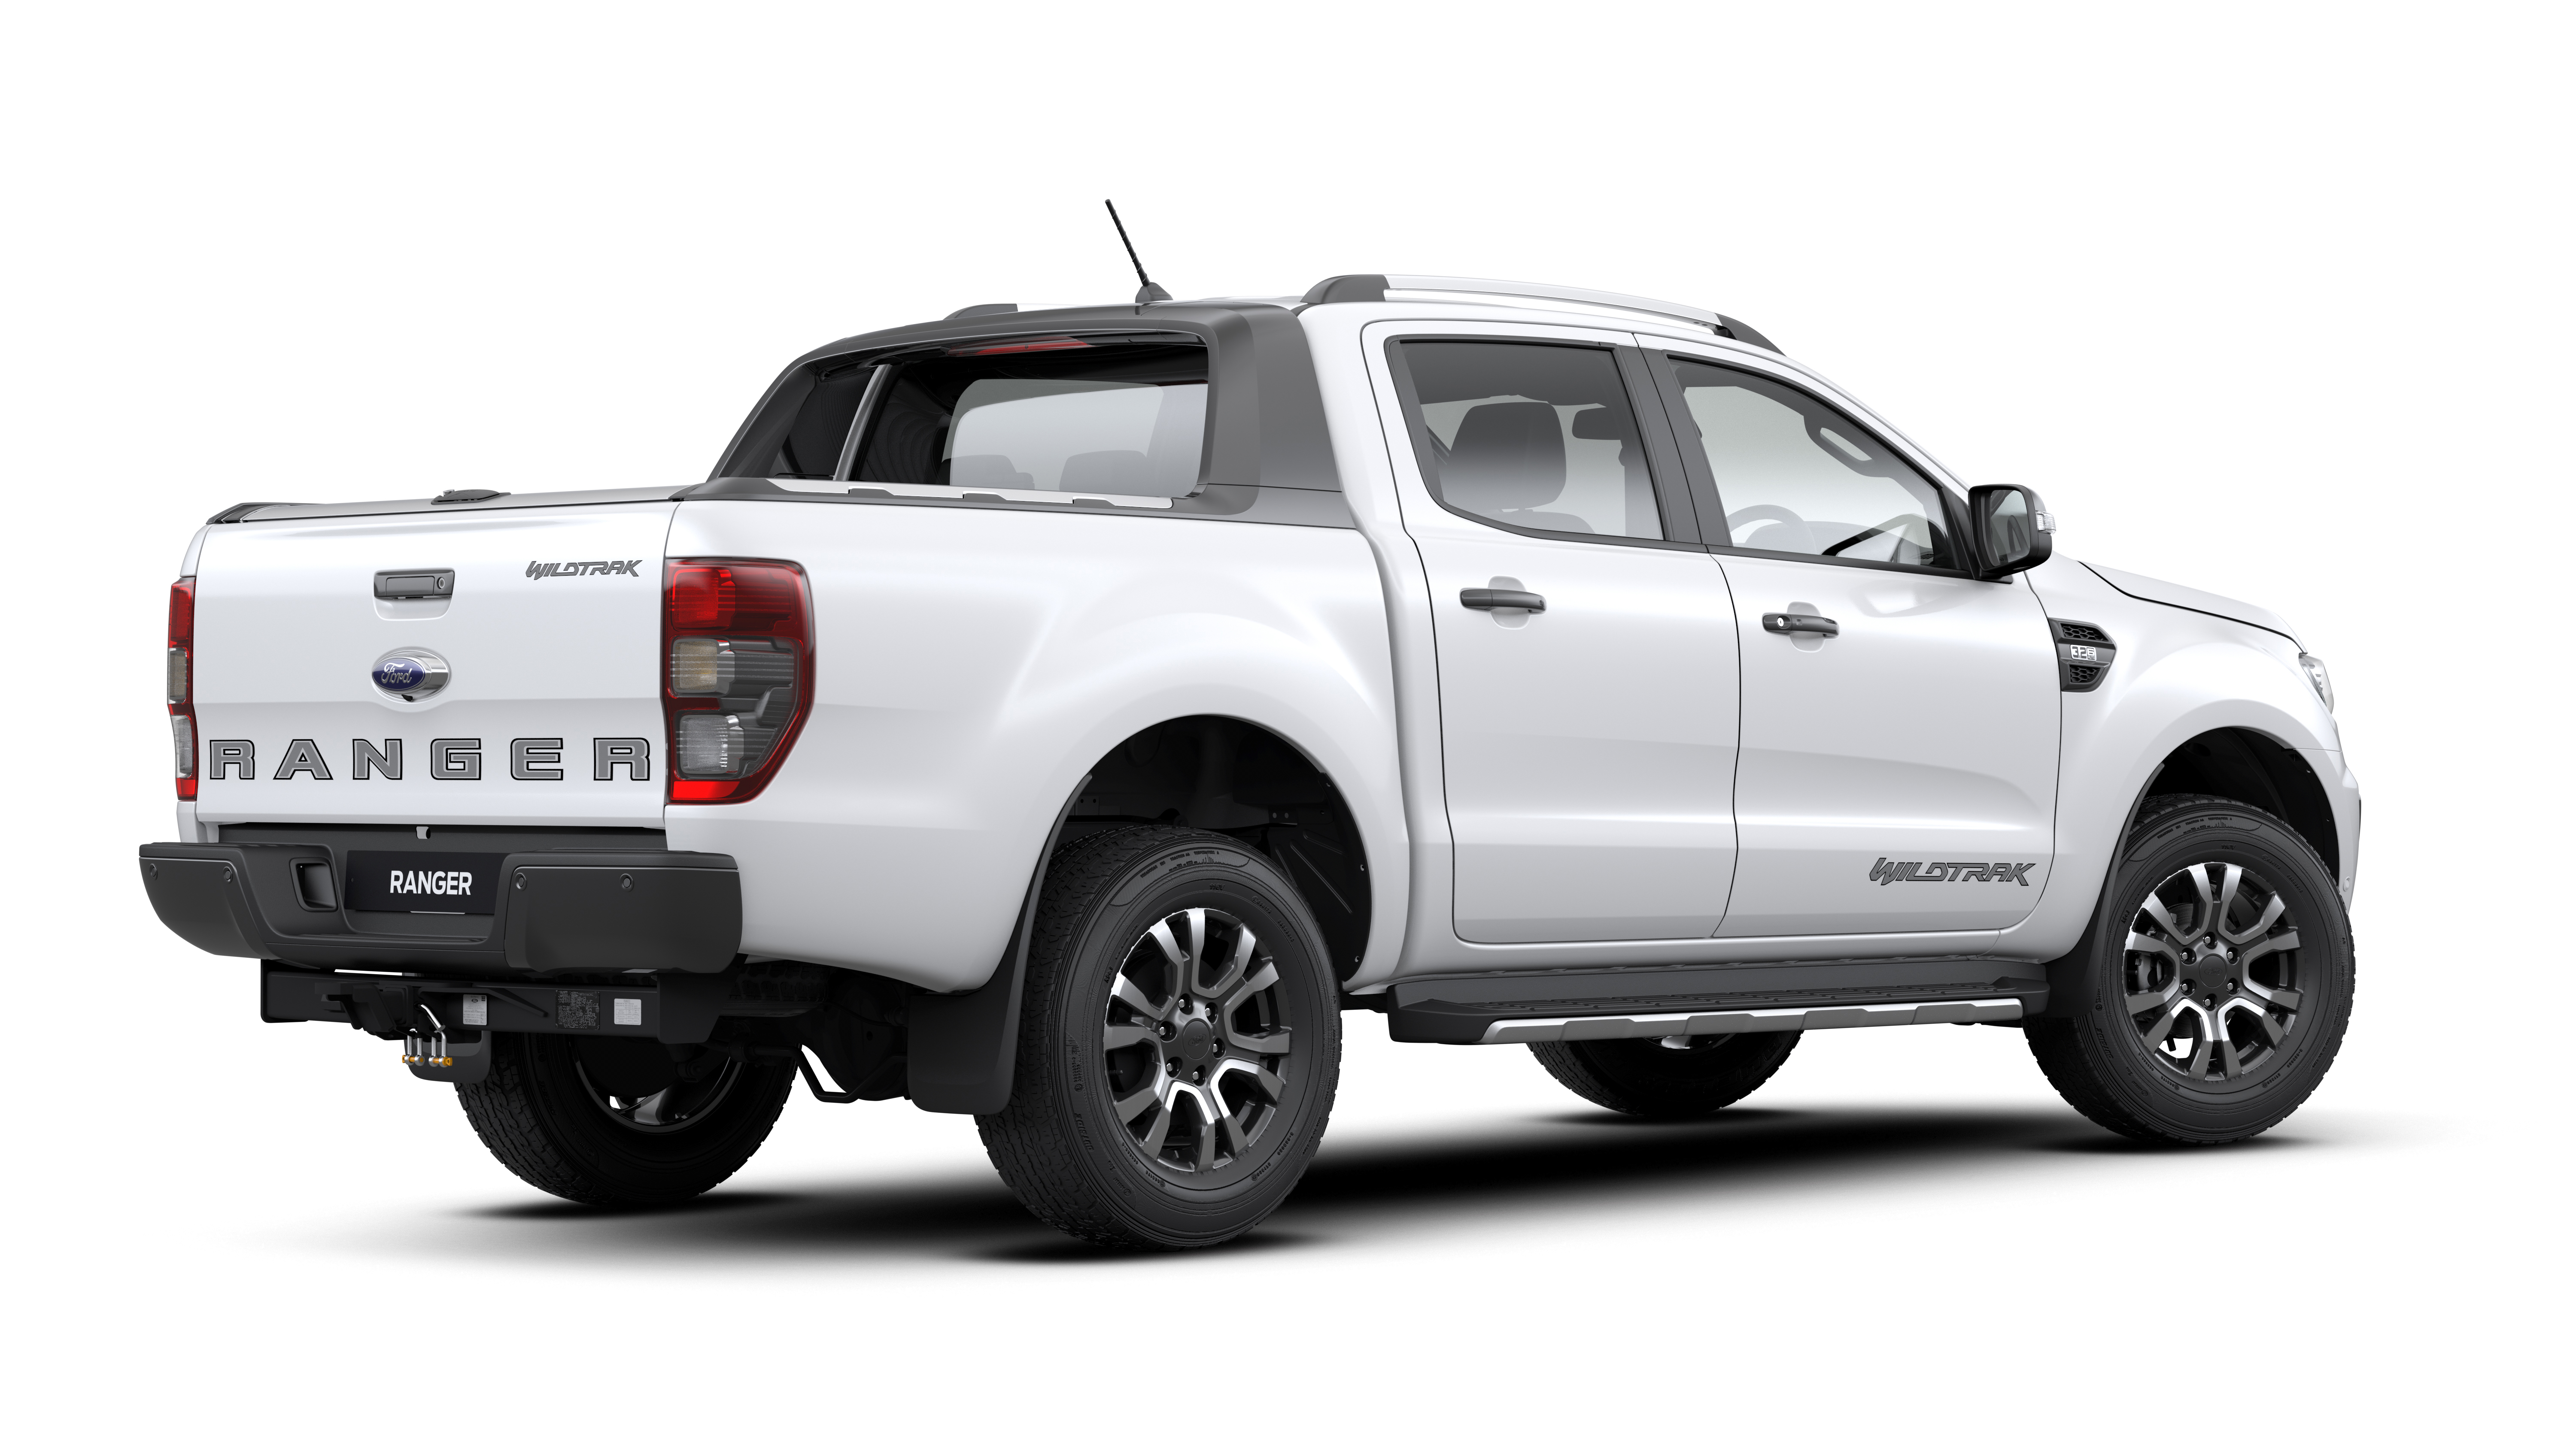 MY2019.75 Ford Ranger Wildtrak 3.2 4x4 Auto Dual cab from only $58990